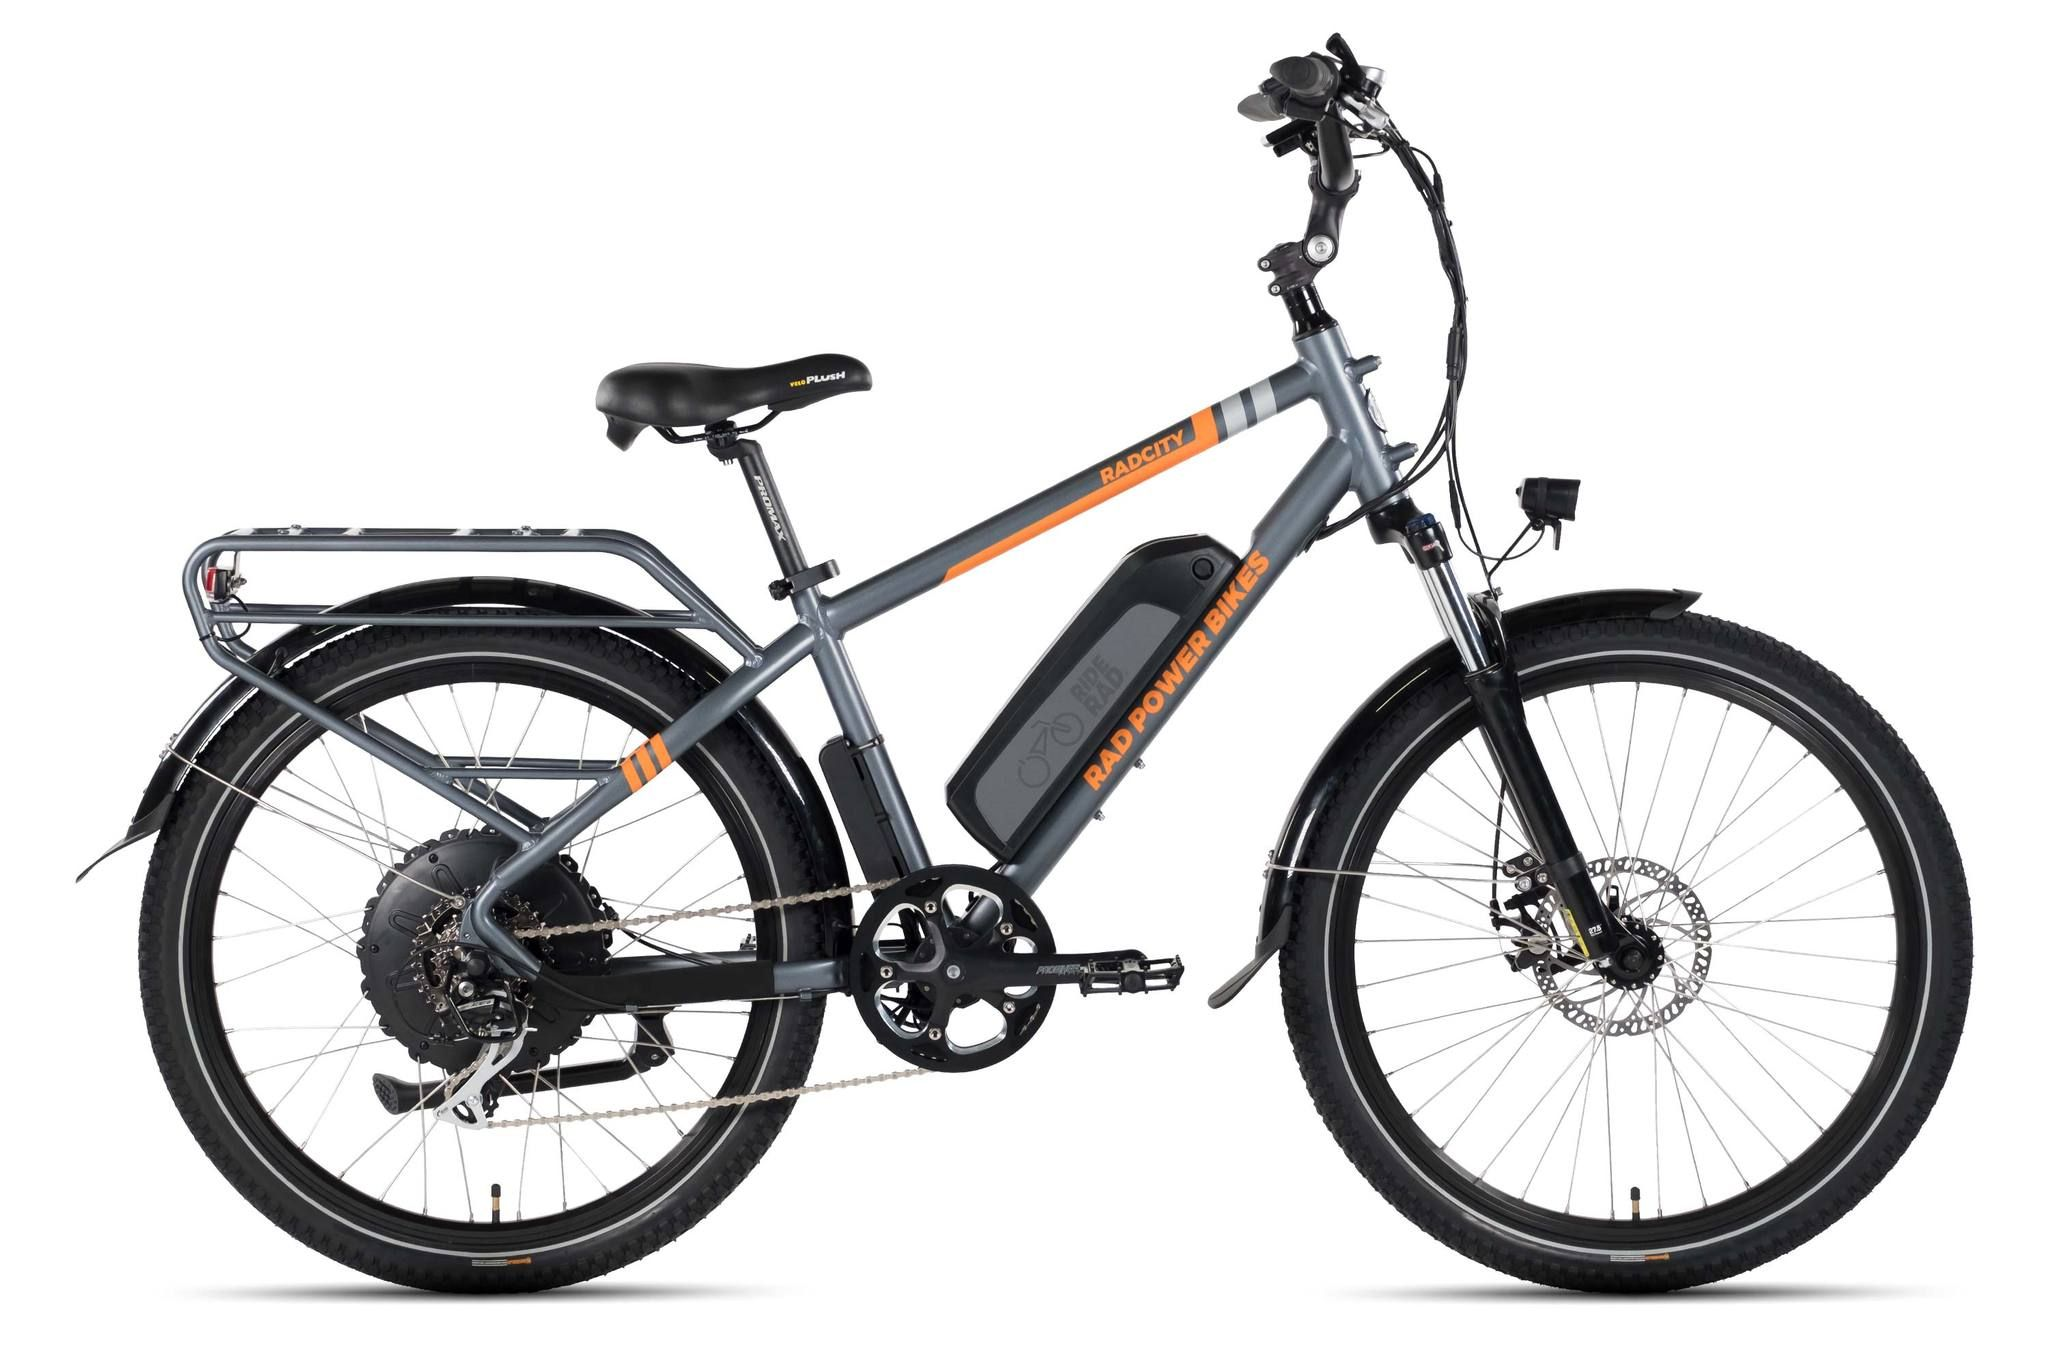 The Rad Power RadCity Is the Affordable E-Bike That Can Change Your Life